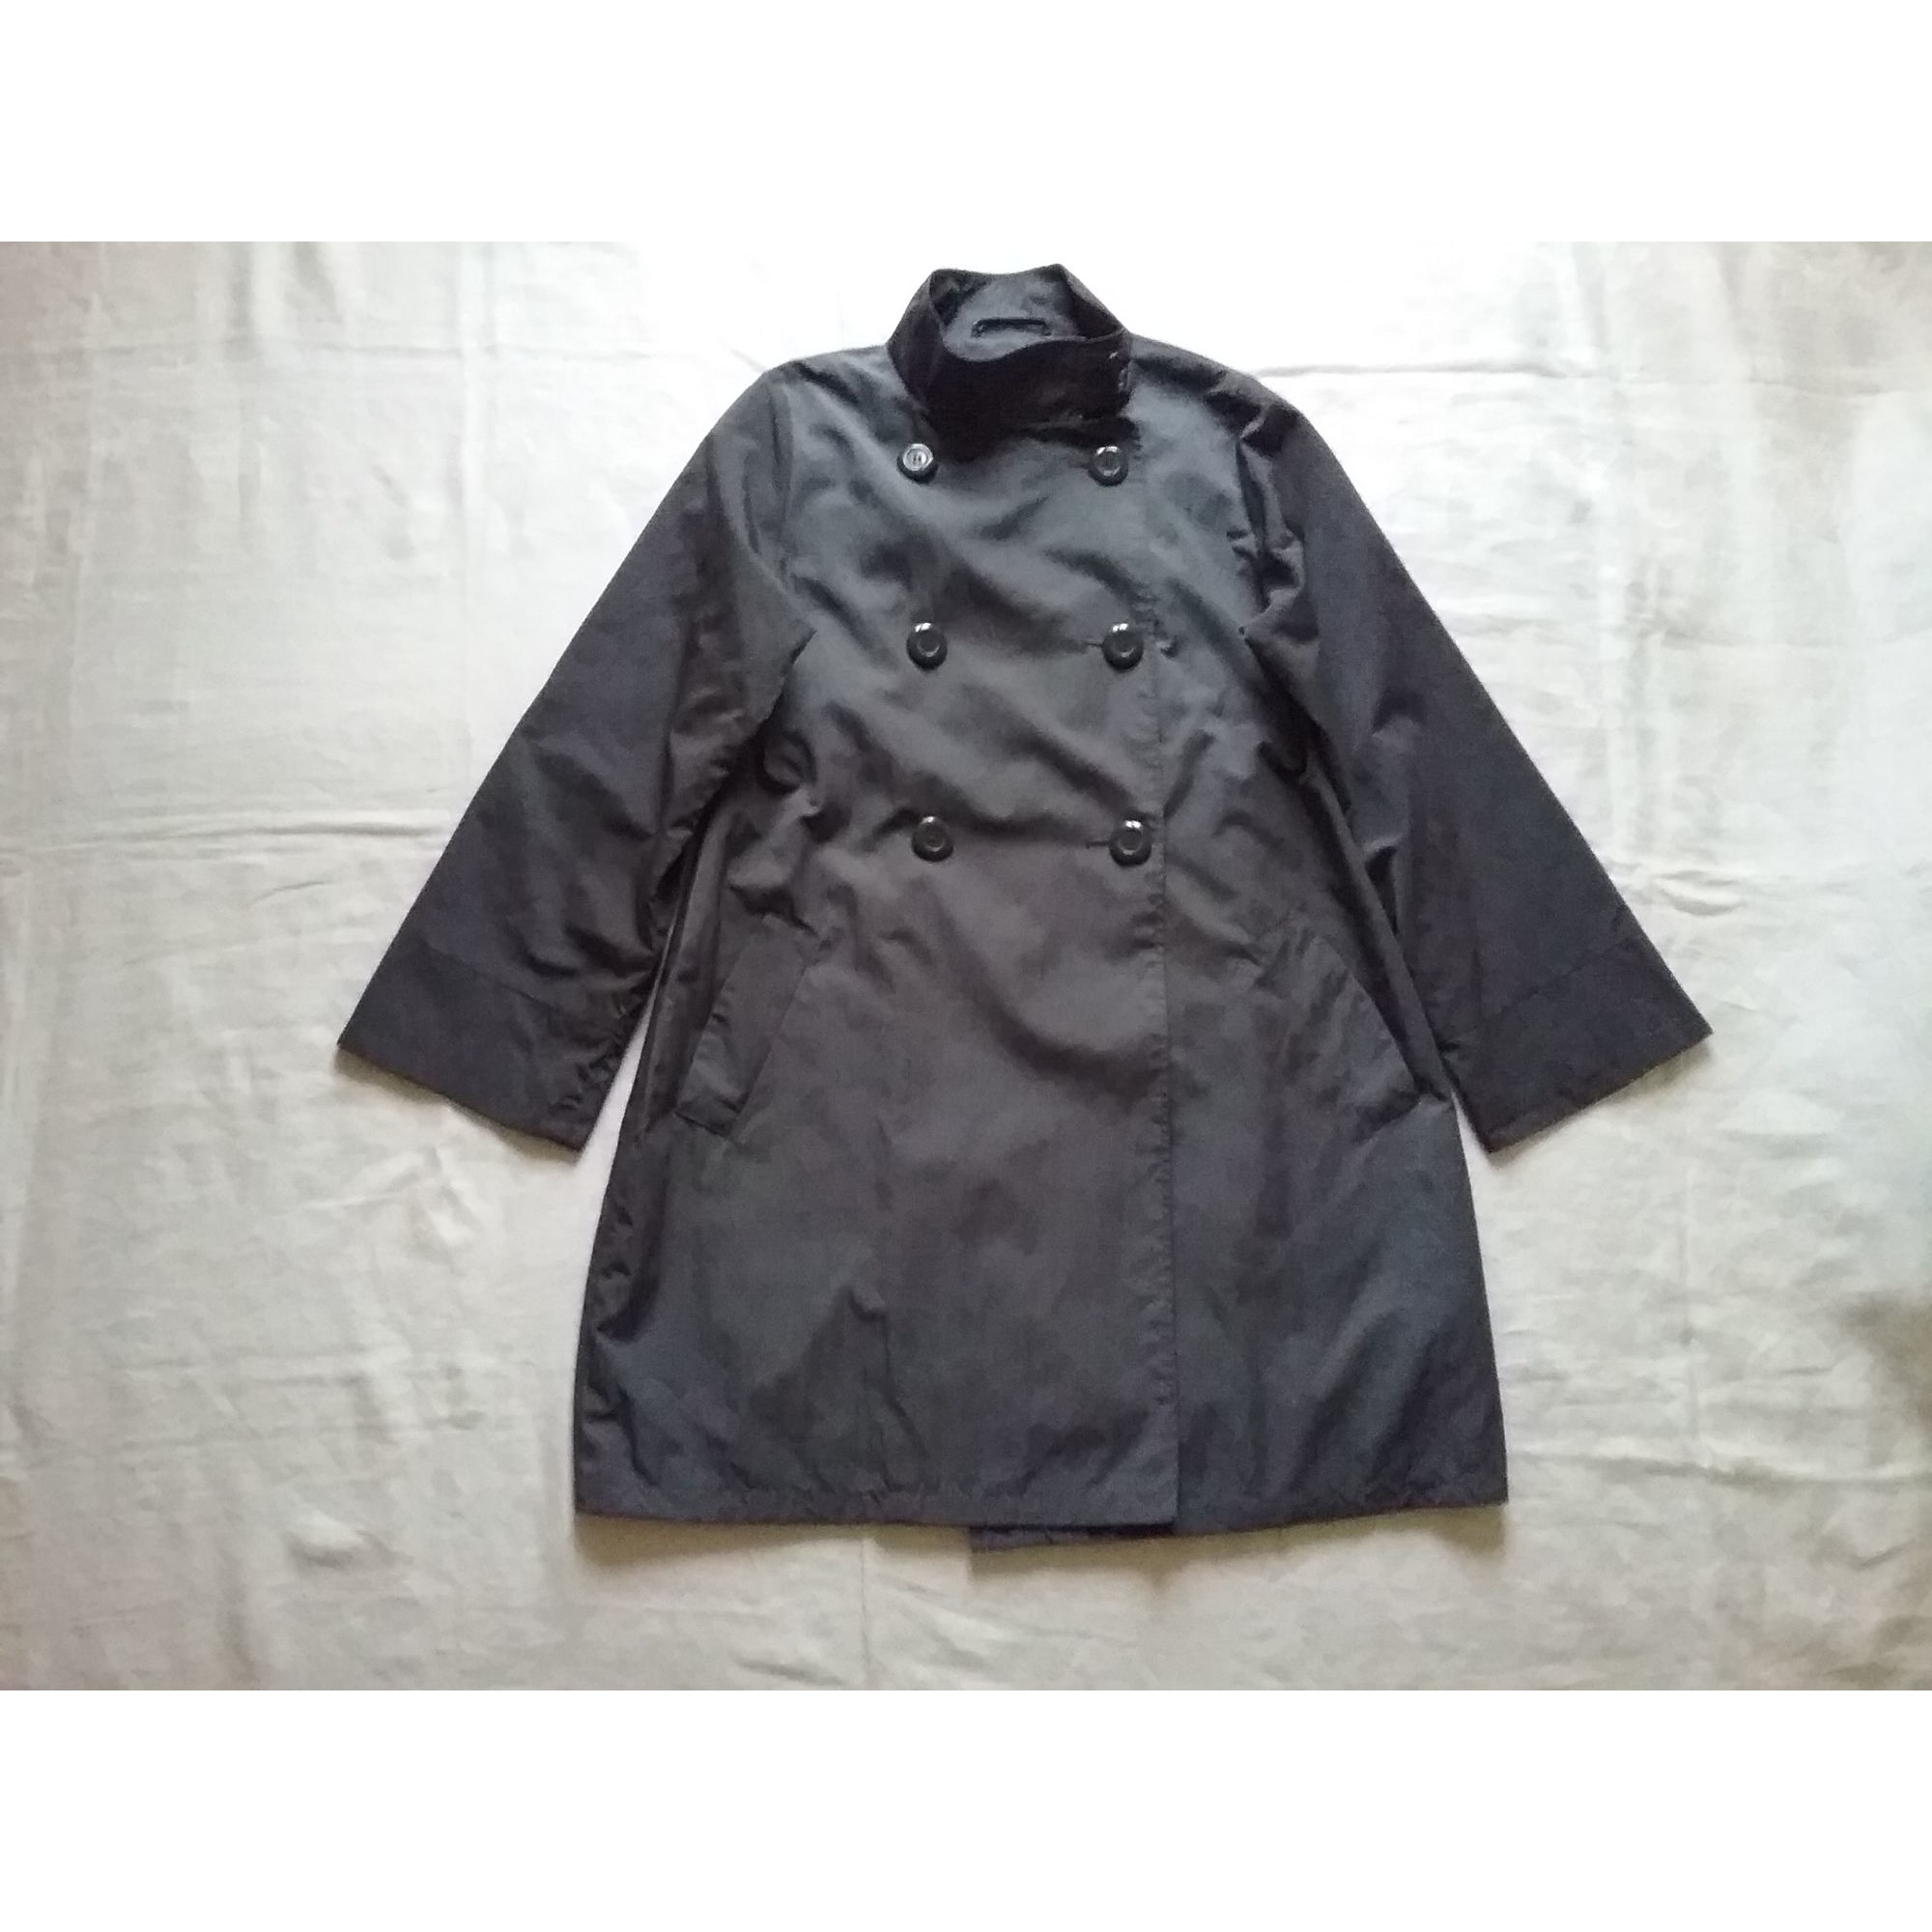 Imperméable, trench DEVERNOIS Gris, anthracite